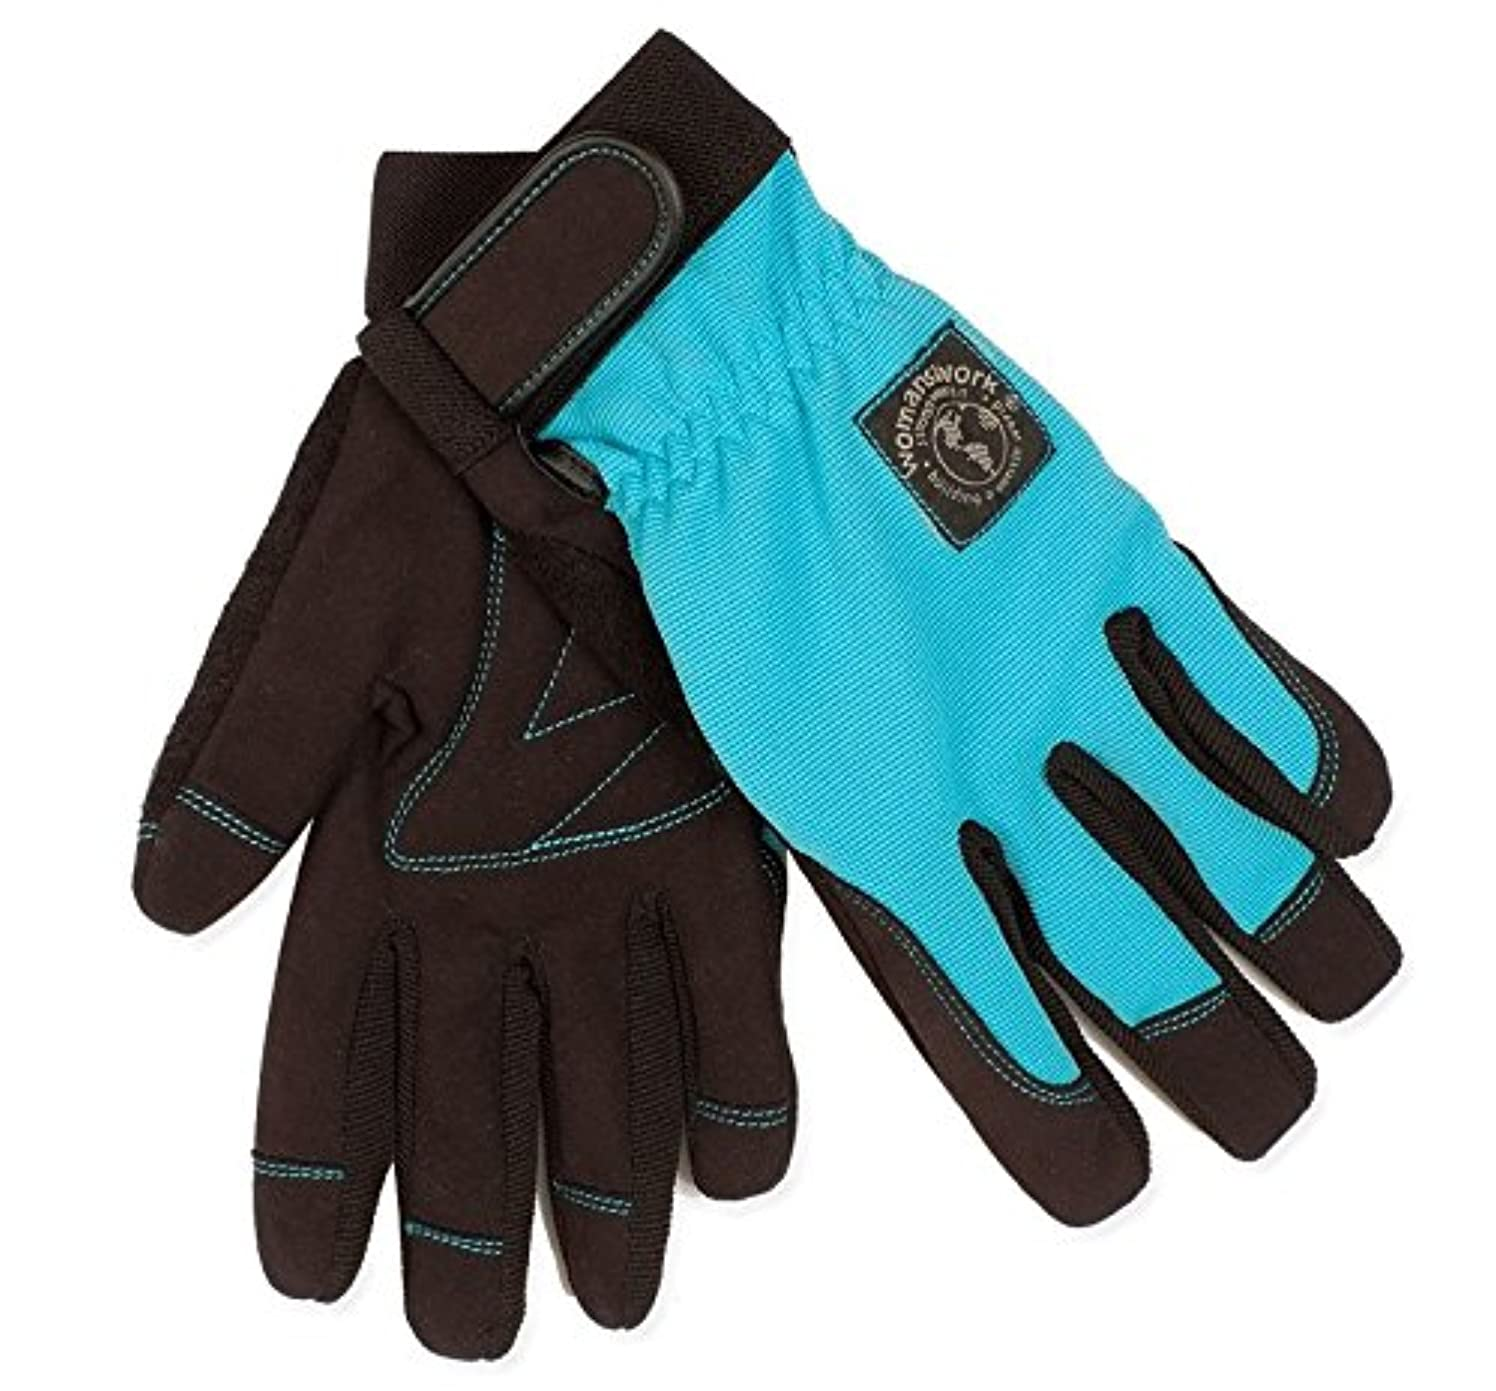 Womanswork 508L Stretch Gardening Glove with Micro Suede Palm, Teal Blue, Large